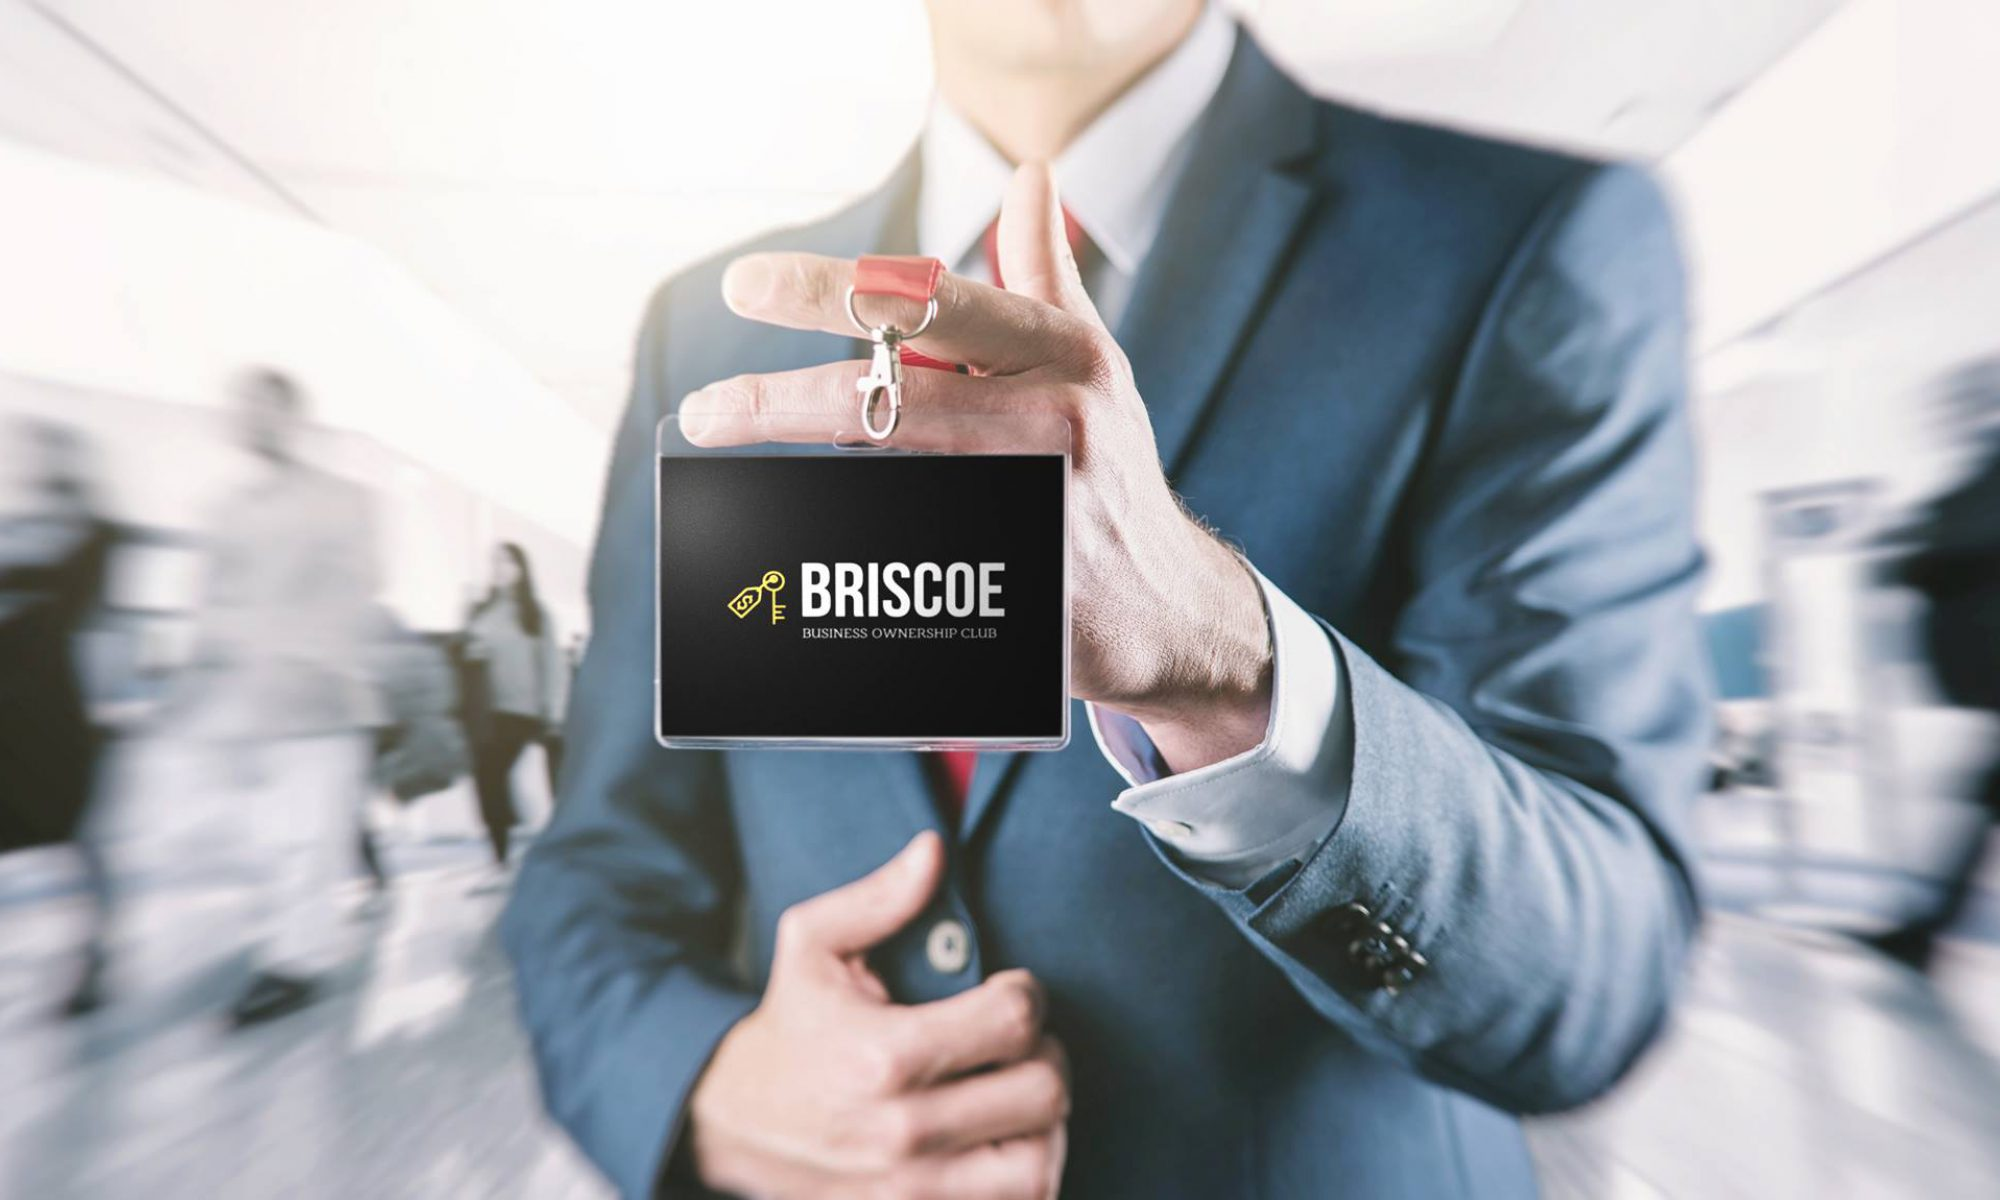 Briscoe Business ownership club